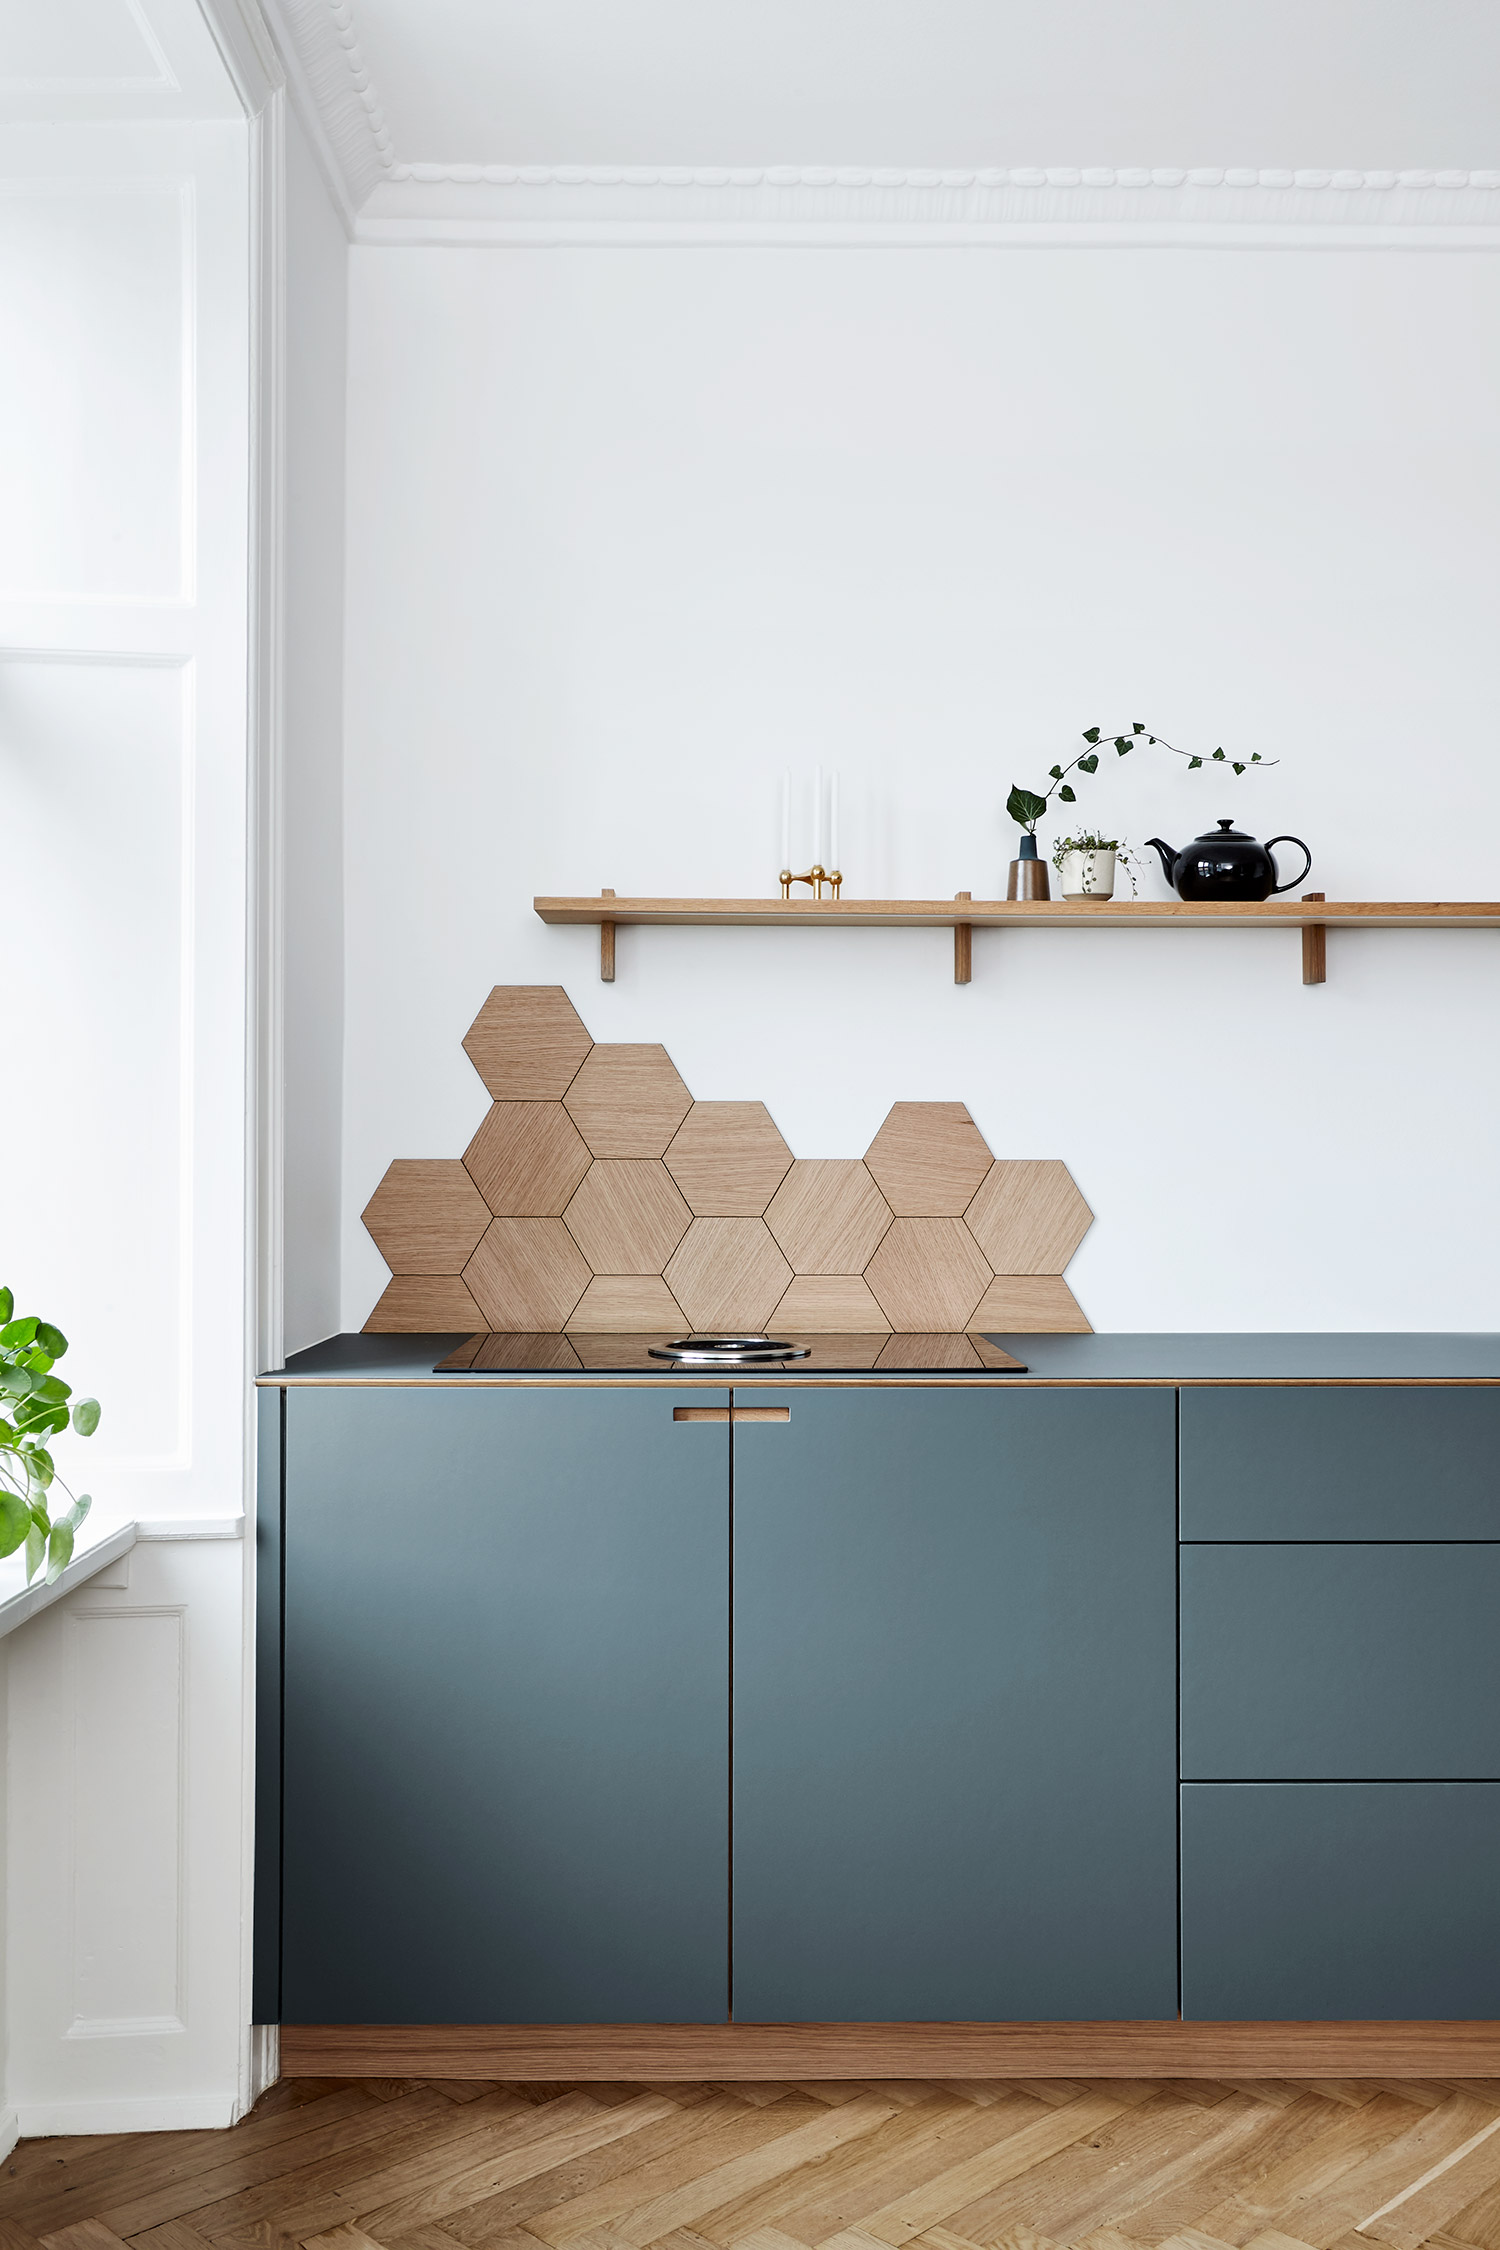 Snedkerkøkken, hexagonfliser og led belysning fra hylde. Design in oak veneer and pewter grey linoleum - af køkkensnedker Nicolaj Bo, København